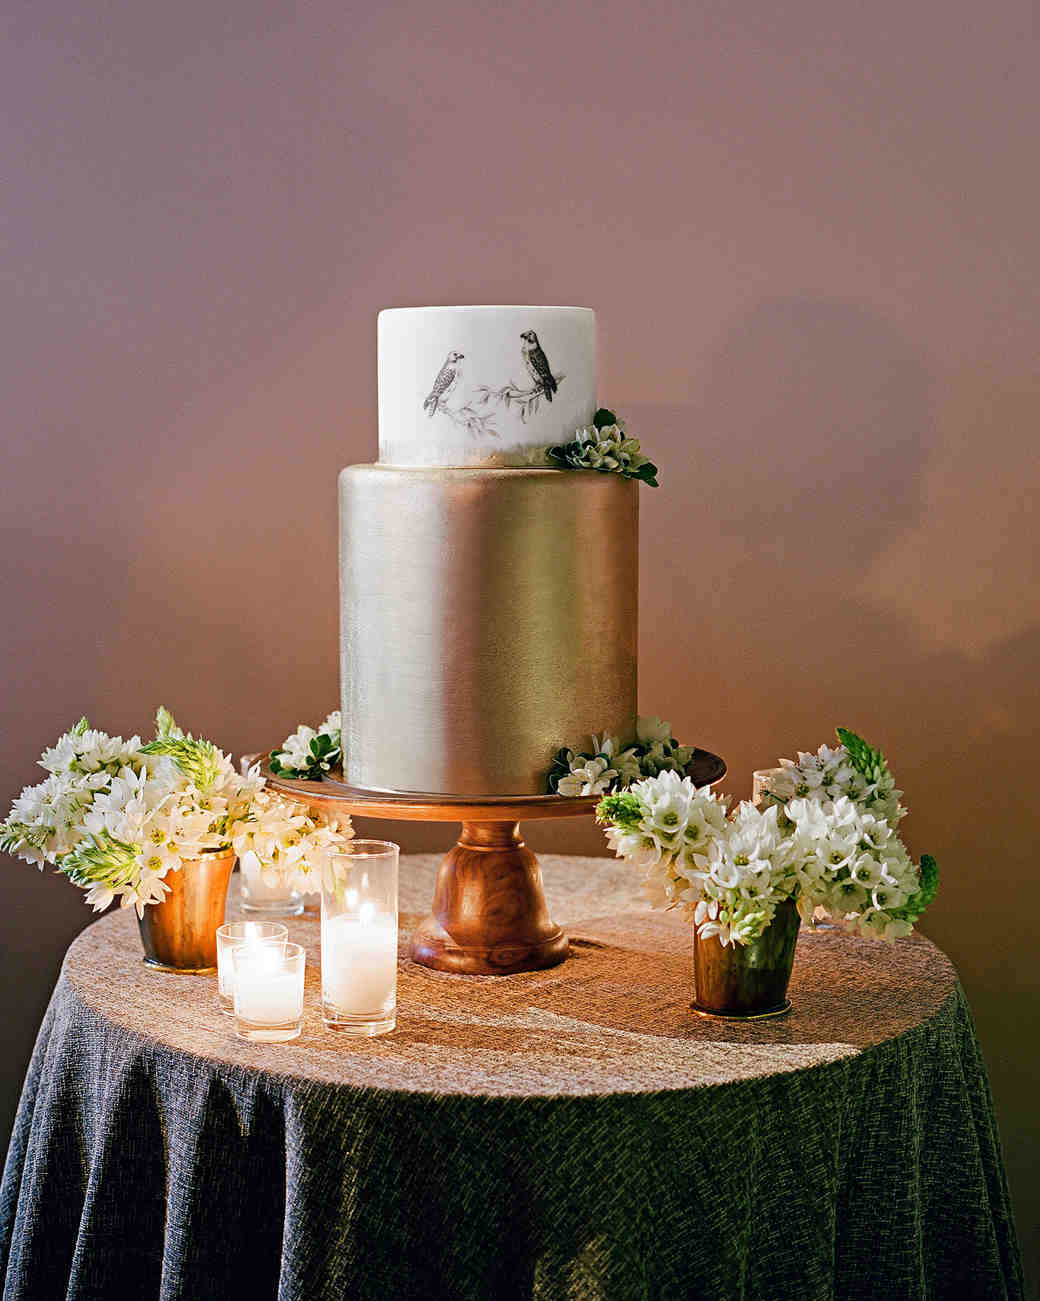 whitney zach wedding cake gold with birds